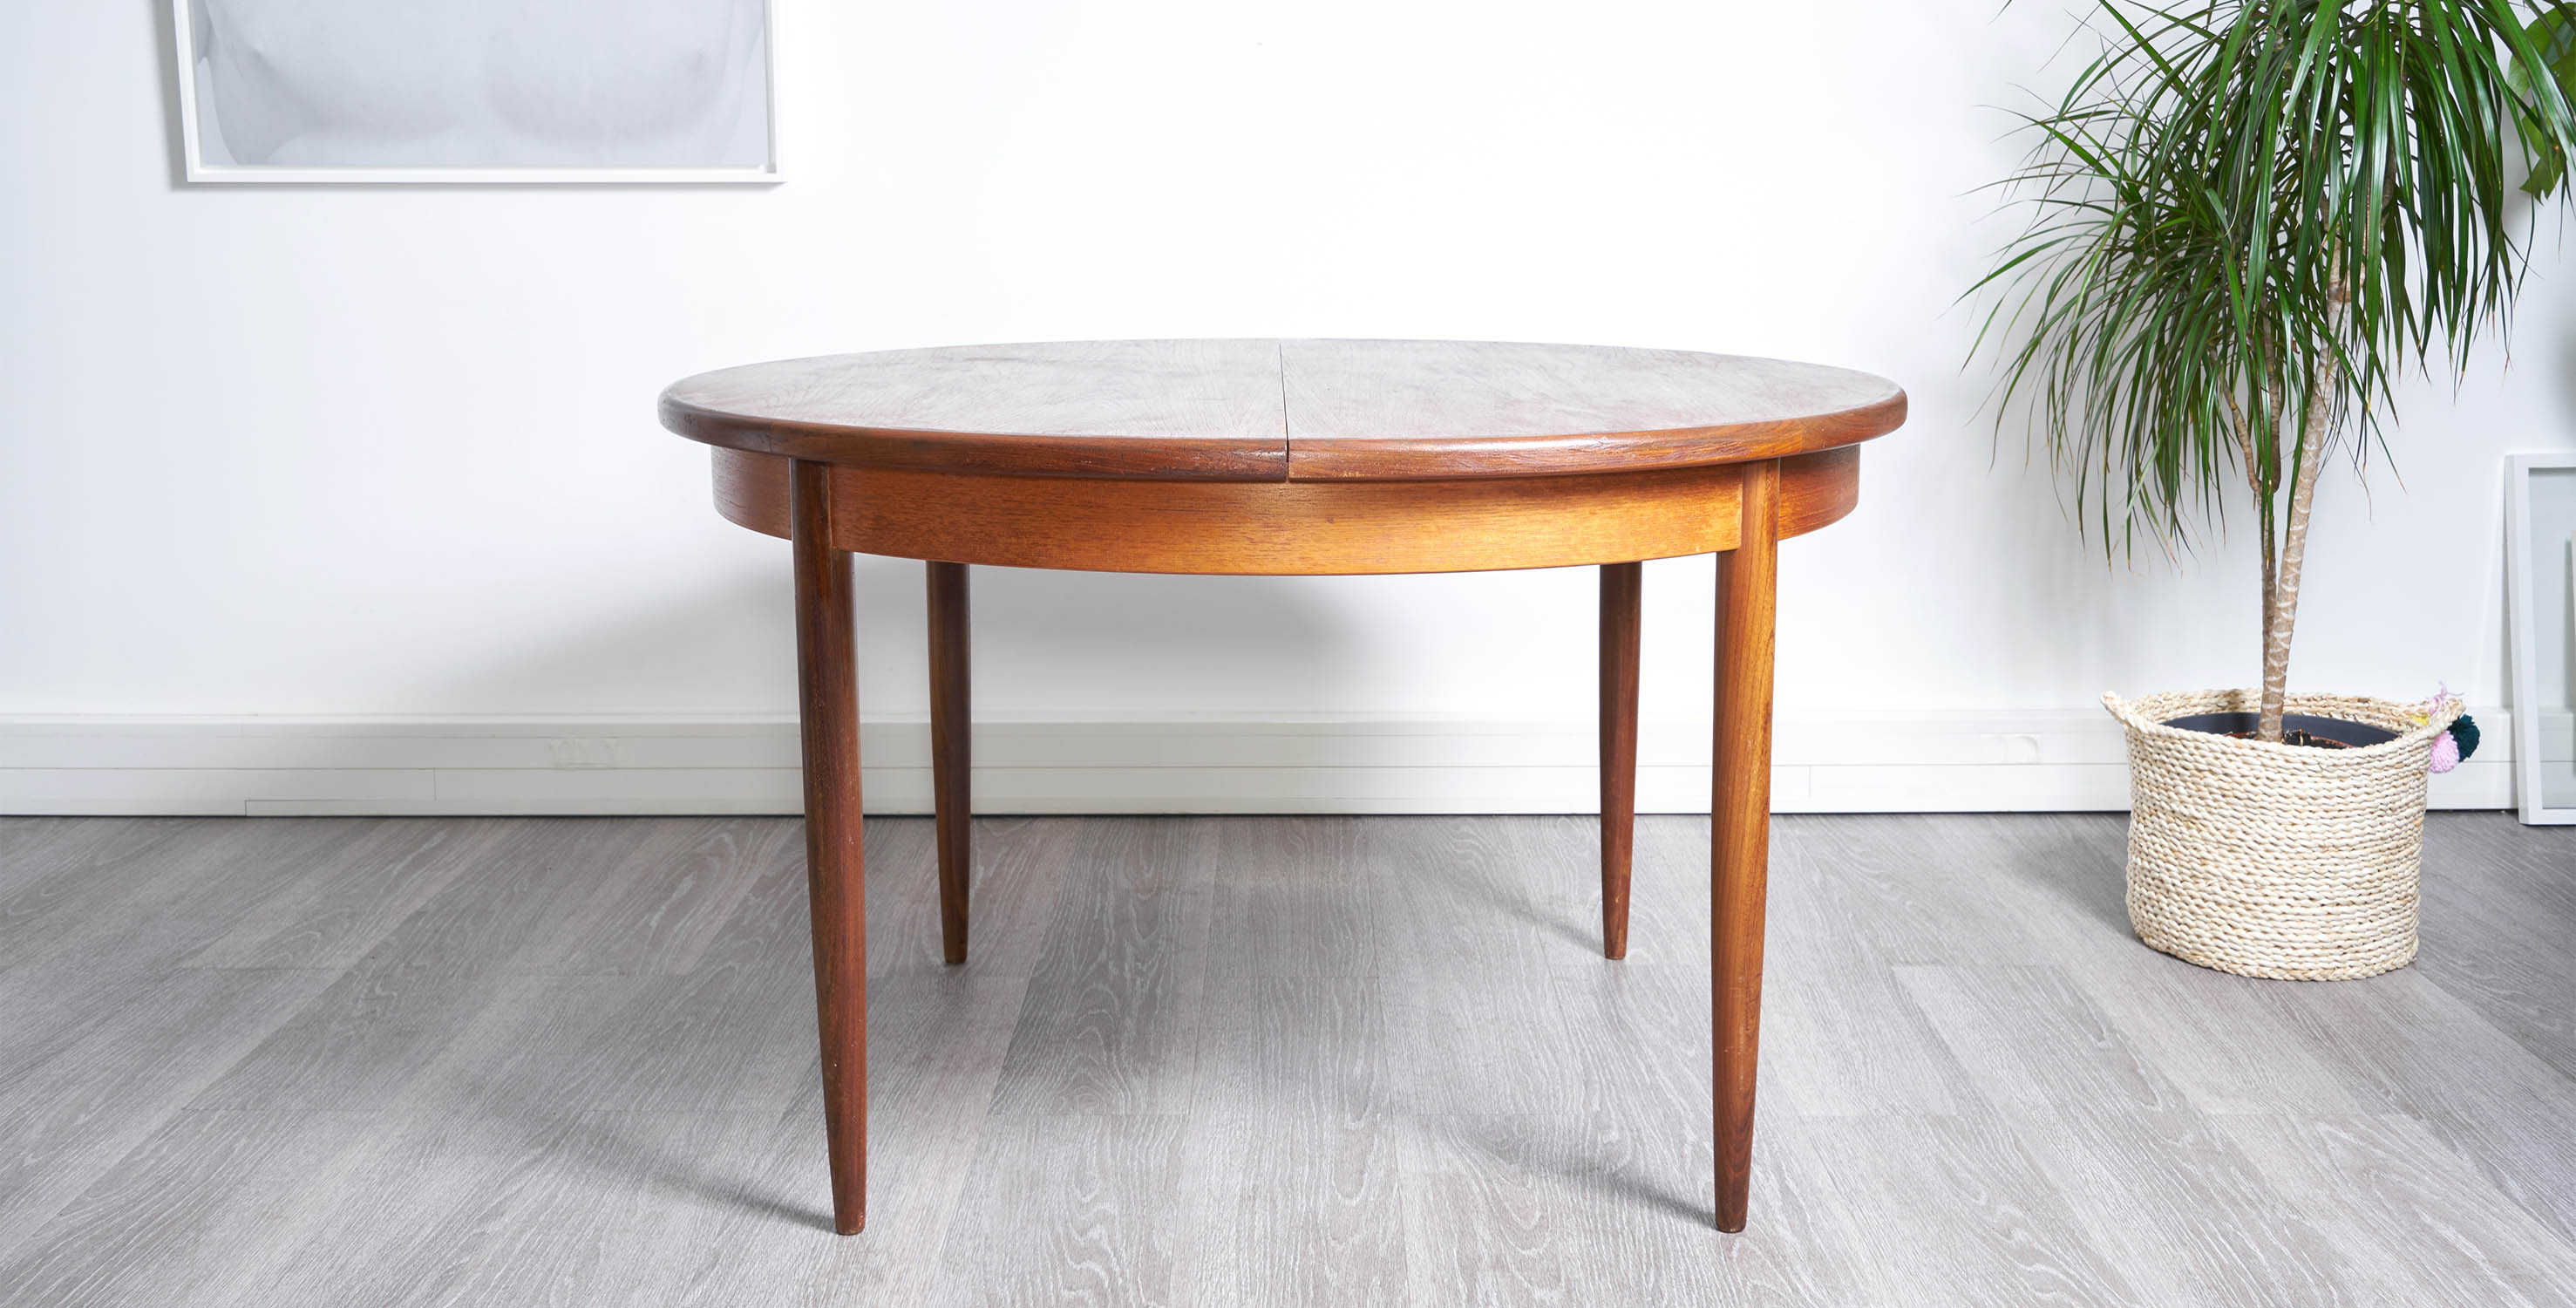 Table Ronde Scandinave Rallonge Table à Manger Ronde Extensible 1960 Style Scandinave Vendue